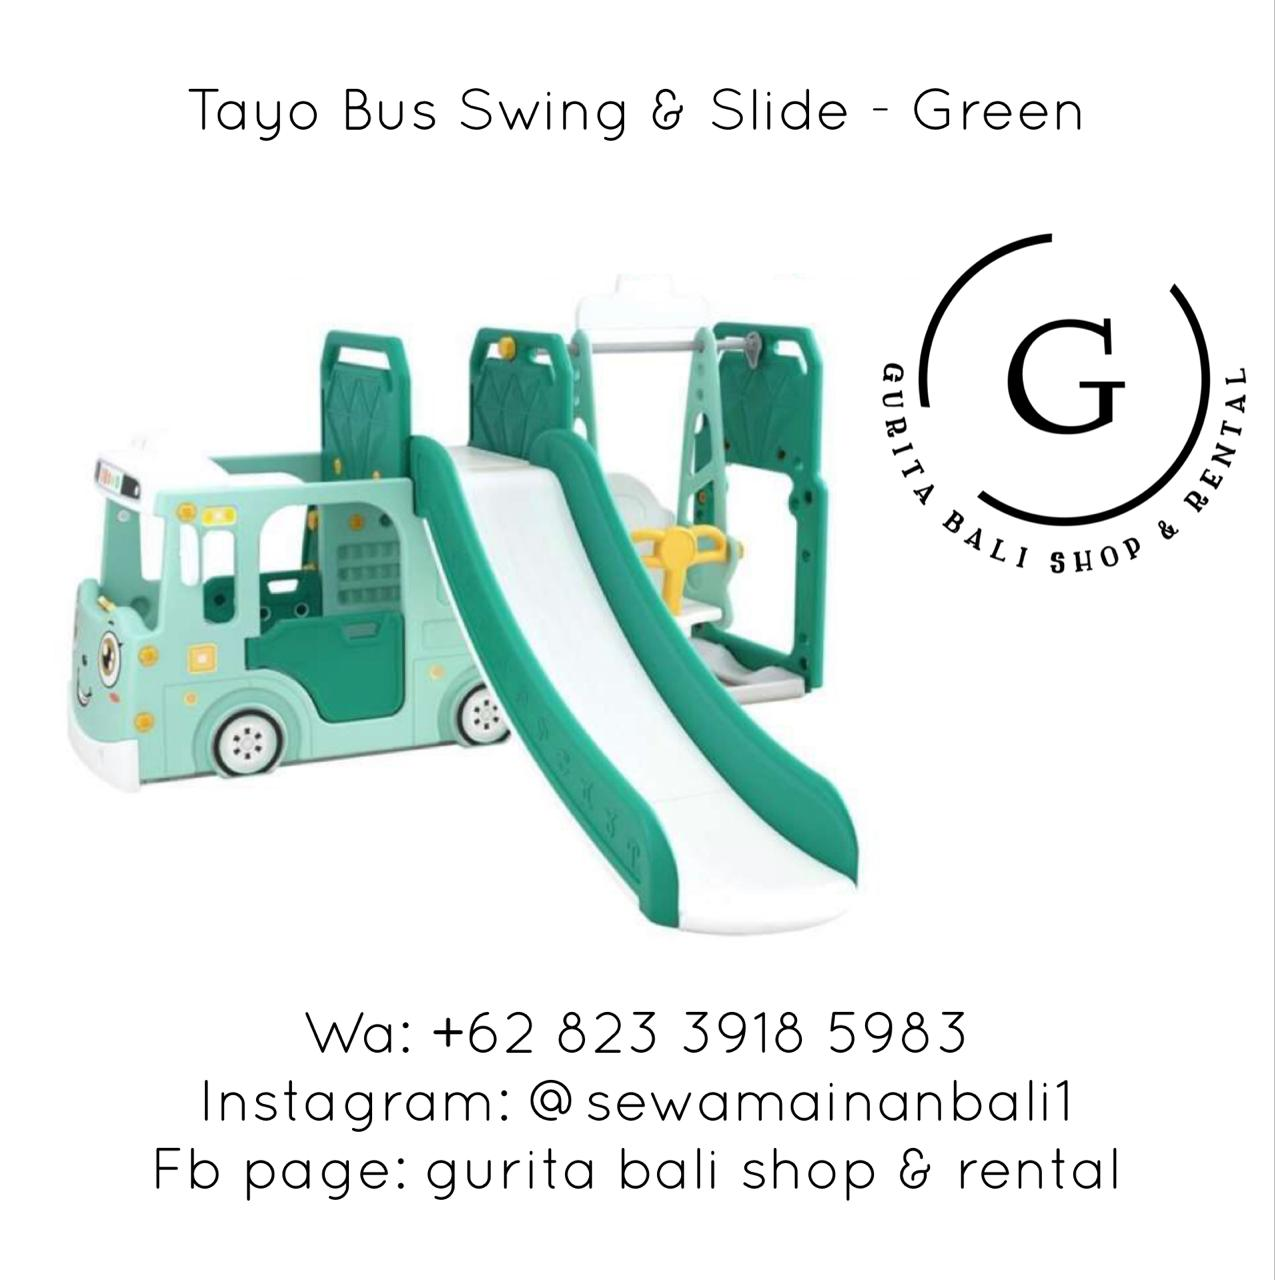 TAYO AND SLIDE ONLY - GREEN